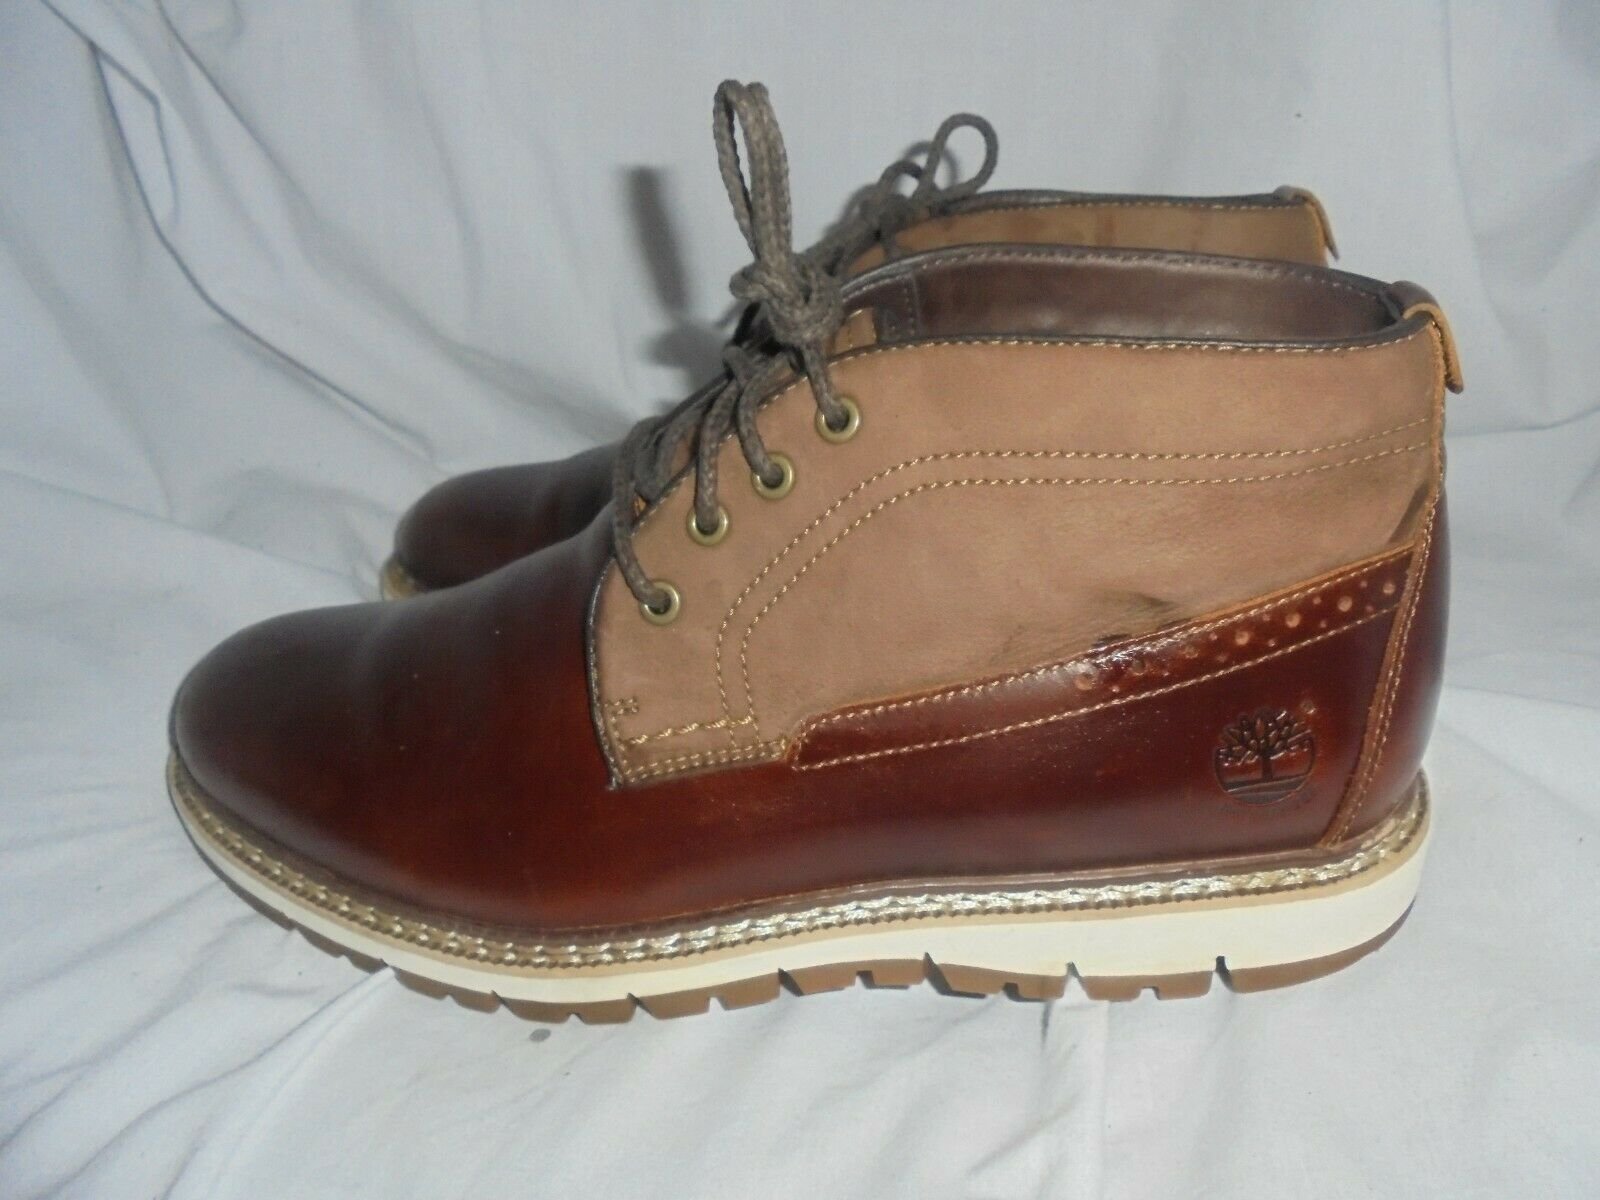 TIMBERLAND MEN BROWN LEATHER LACE UP ANKLE BOOT SIZE UK 8 EU 42 US 8.5 VGC